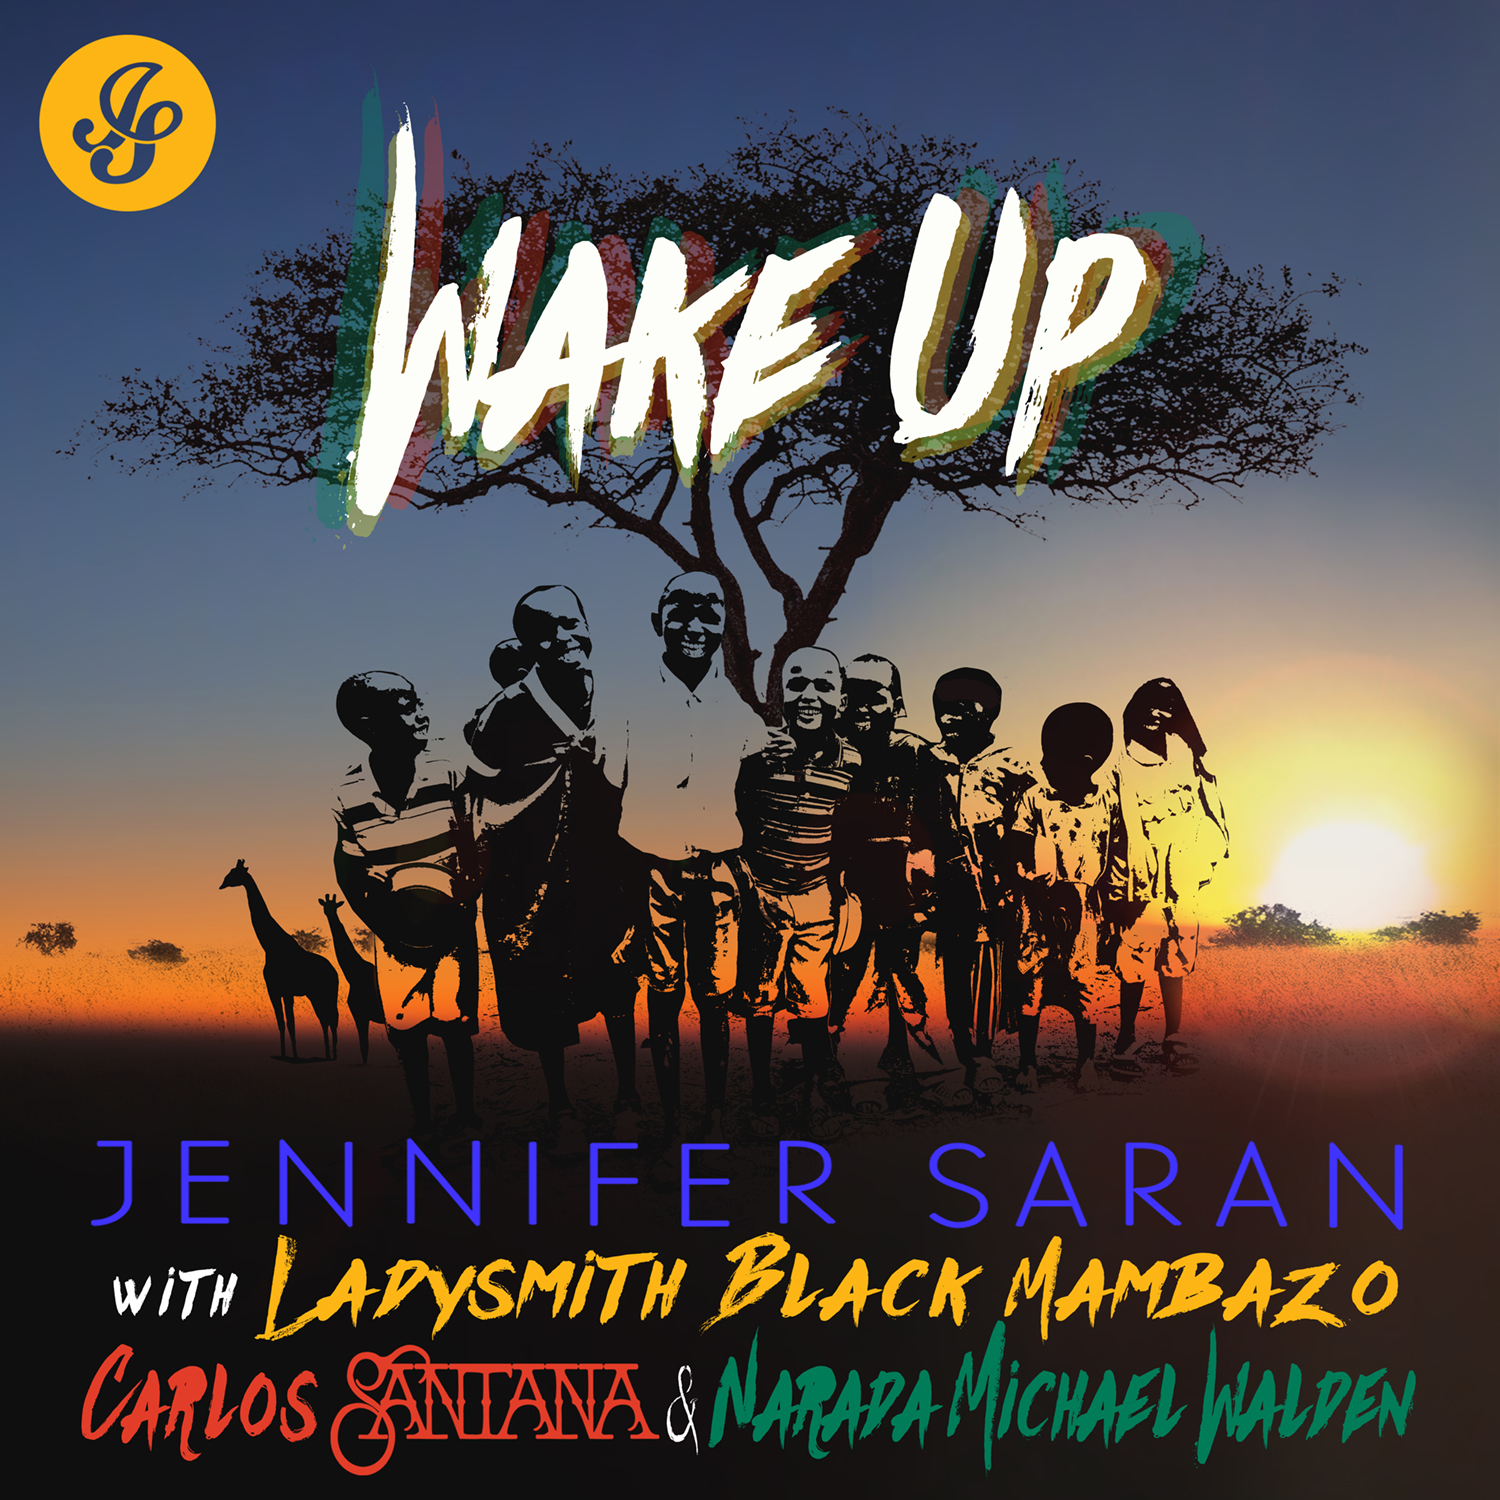 jennifer-saran-wake-up